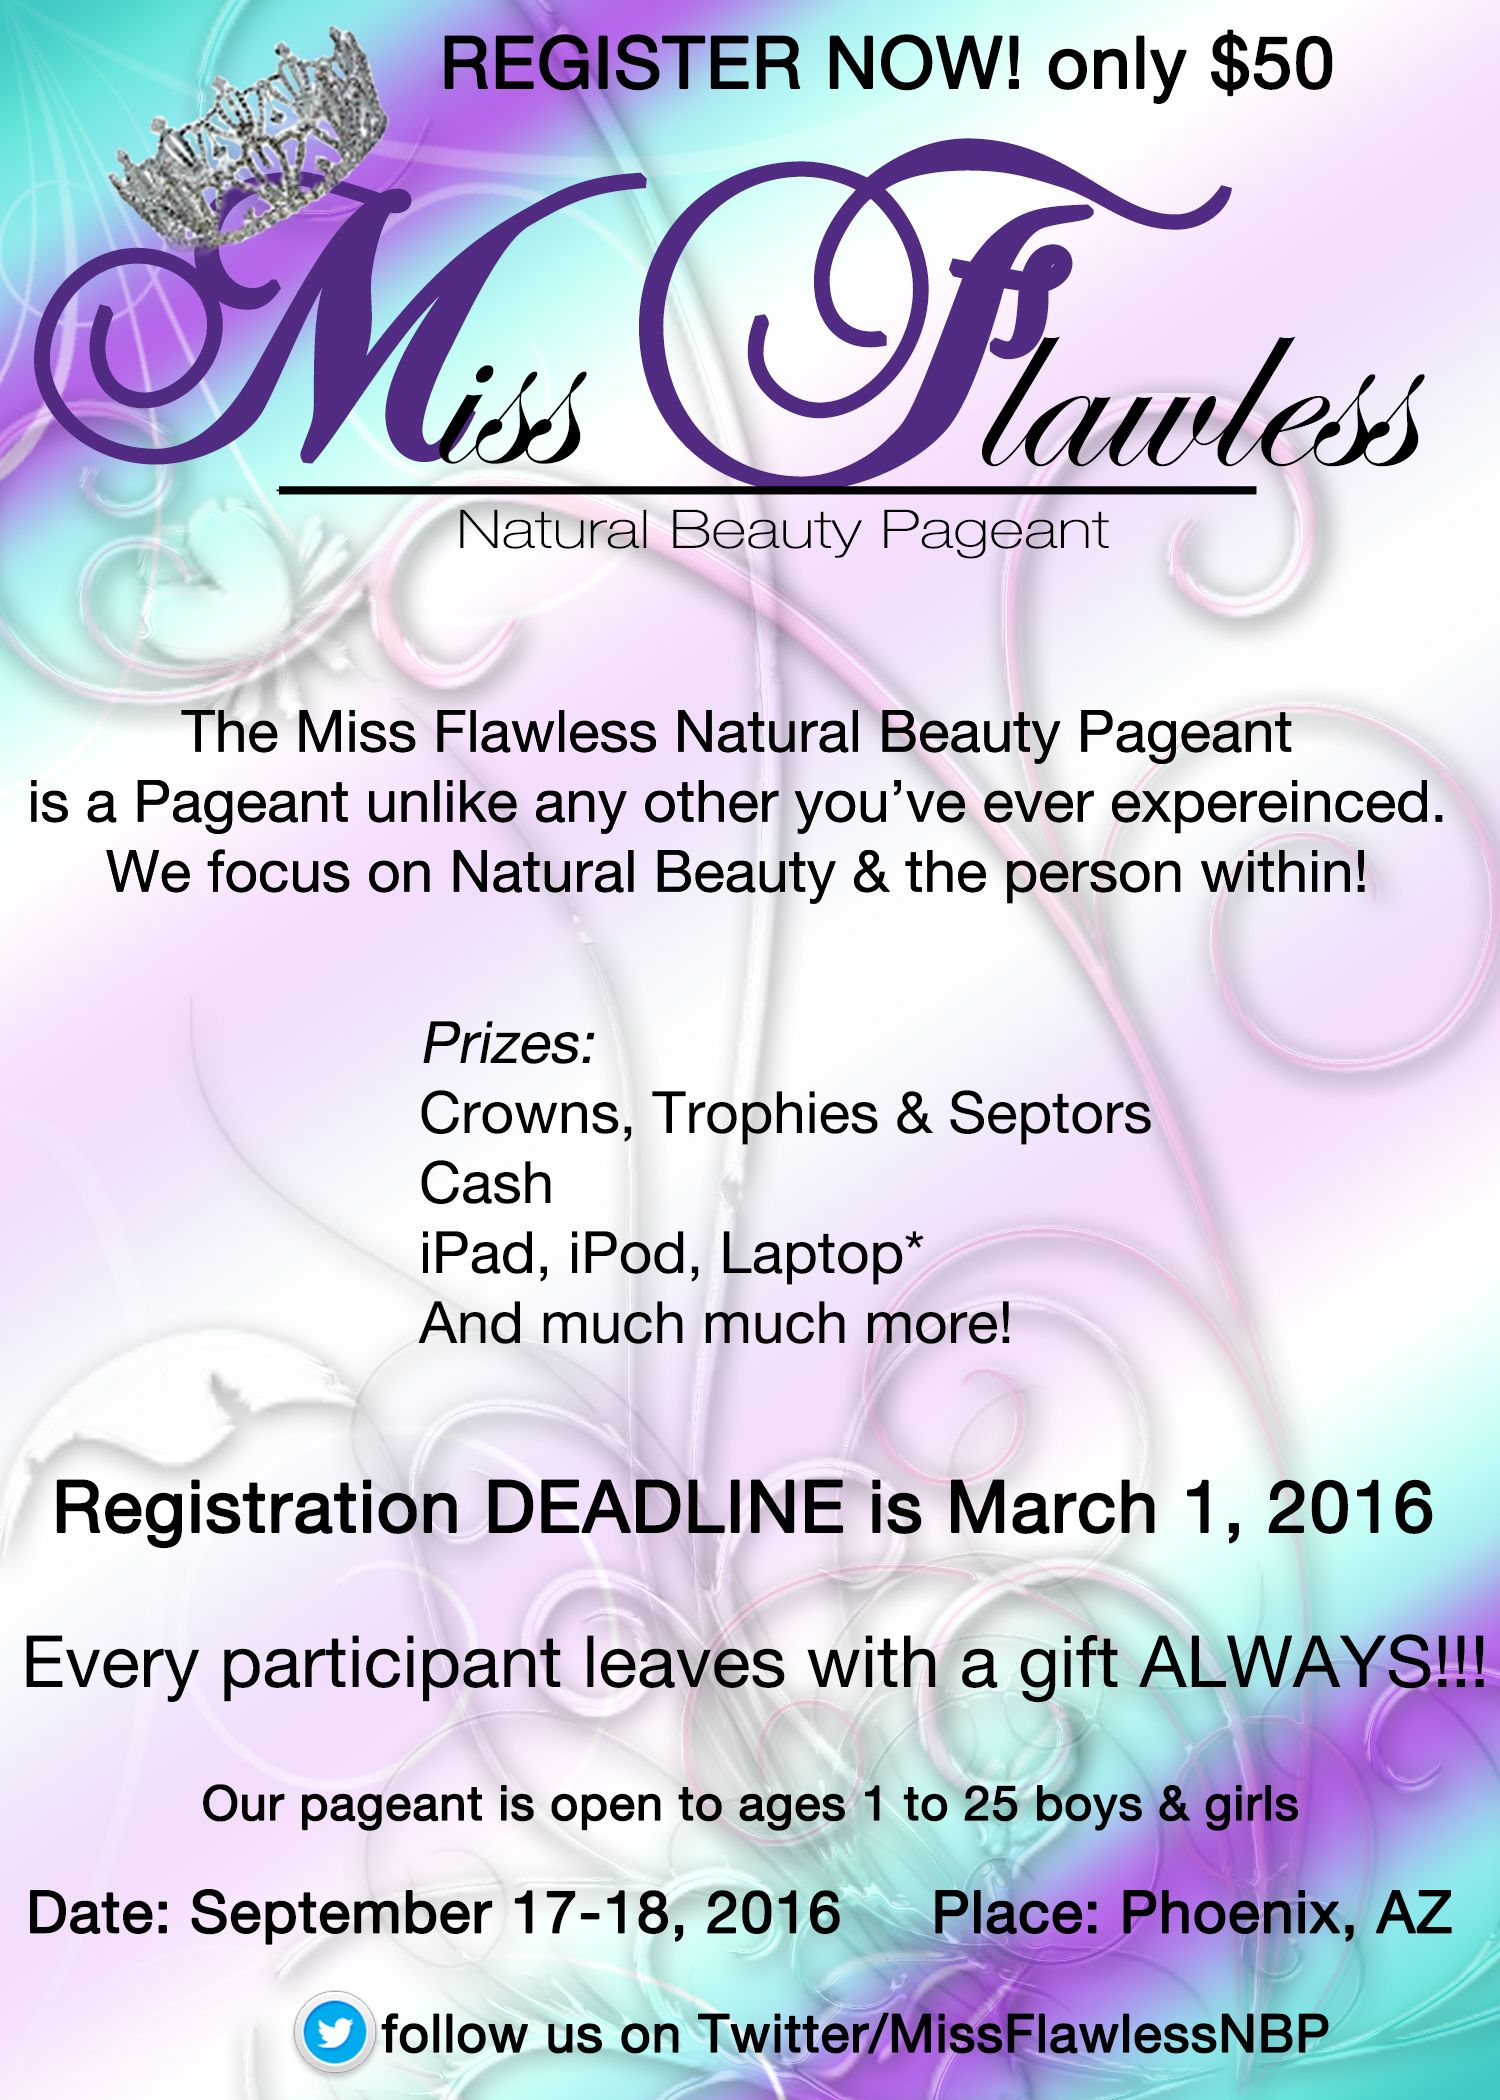 pageant flyer beauty pageant natural beauty nature design pageants off grid